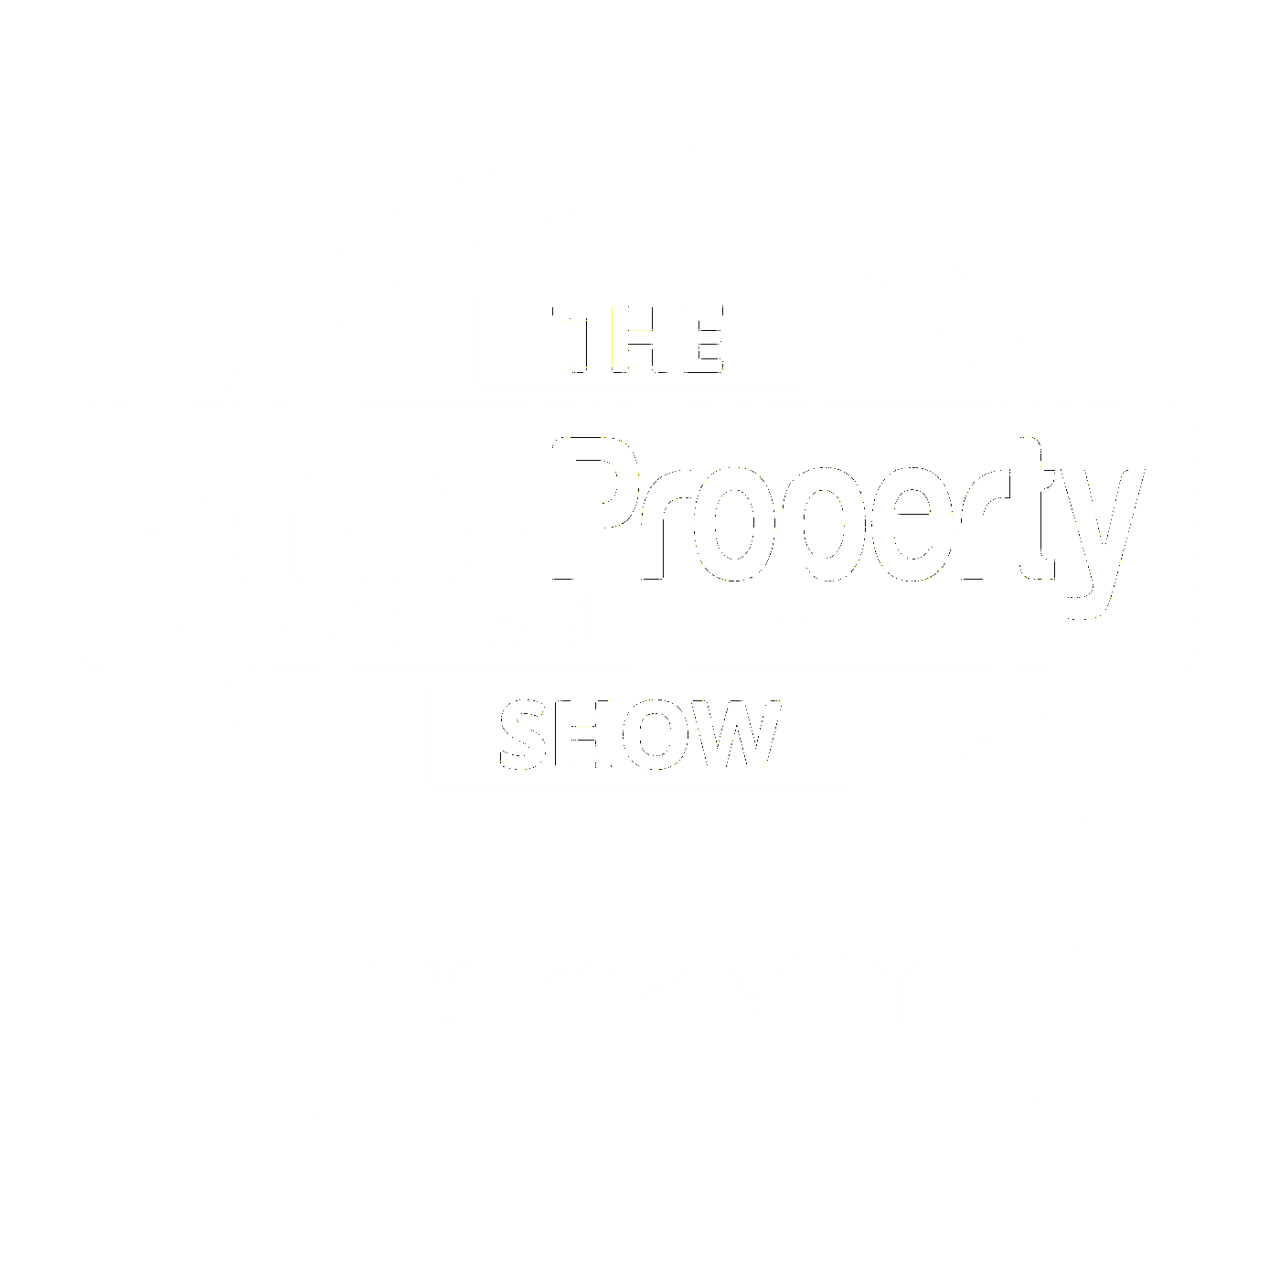 the-smart-property-1280x1280